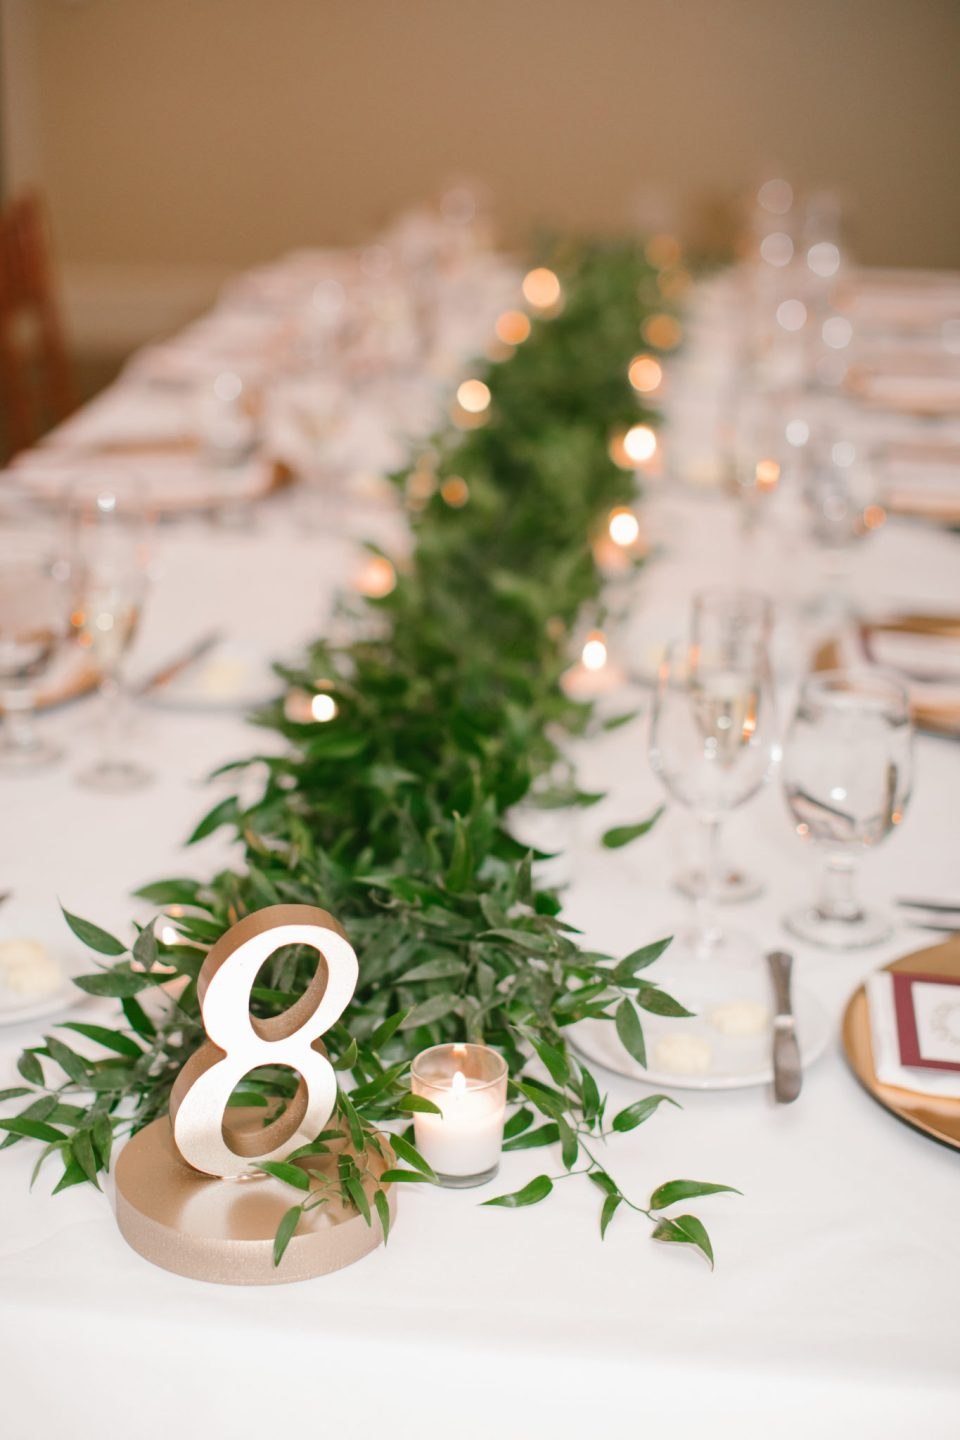 wedding reception details at Navesink Country Club photographed by Ashley Mac Photographs